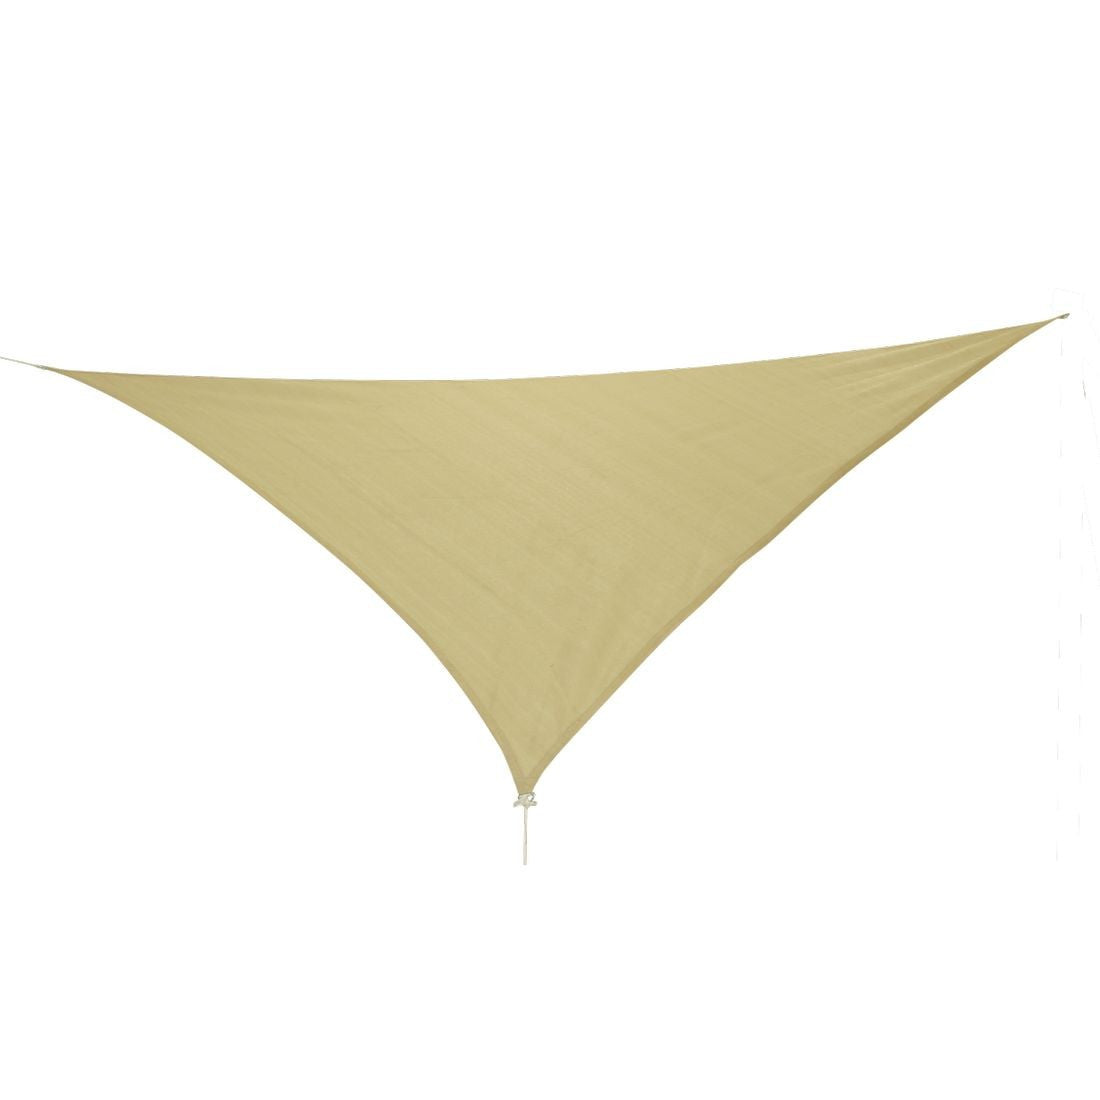 10T Emerson 500 - Triangle sun awning tarp, 500cm, knitted fabric, 90% UV-protection - Bell tents